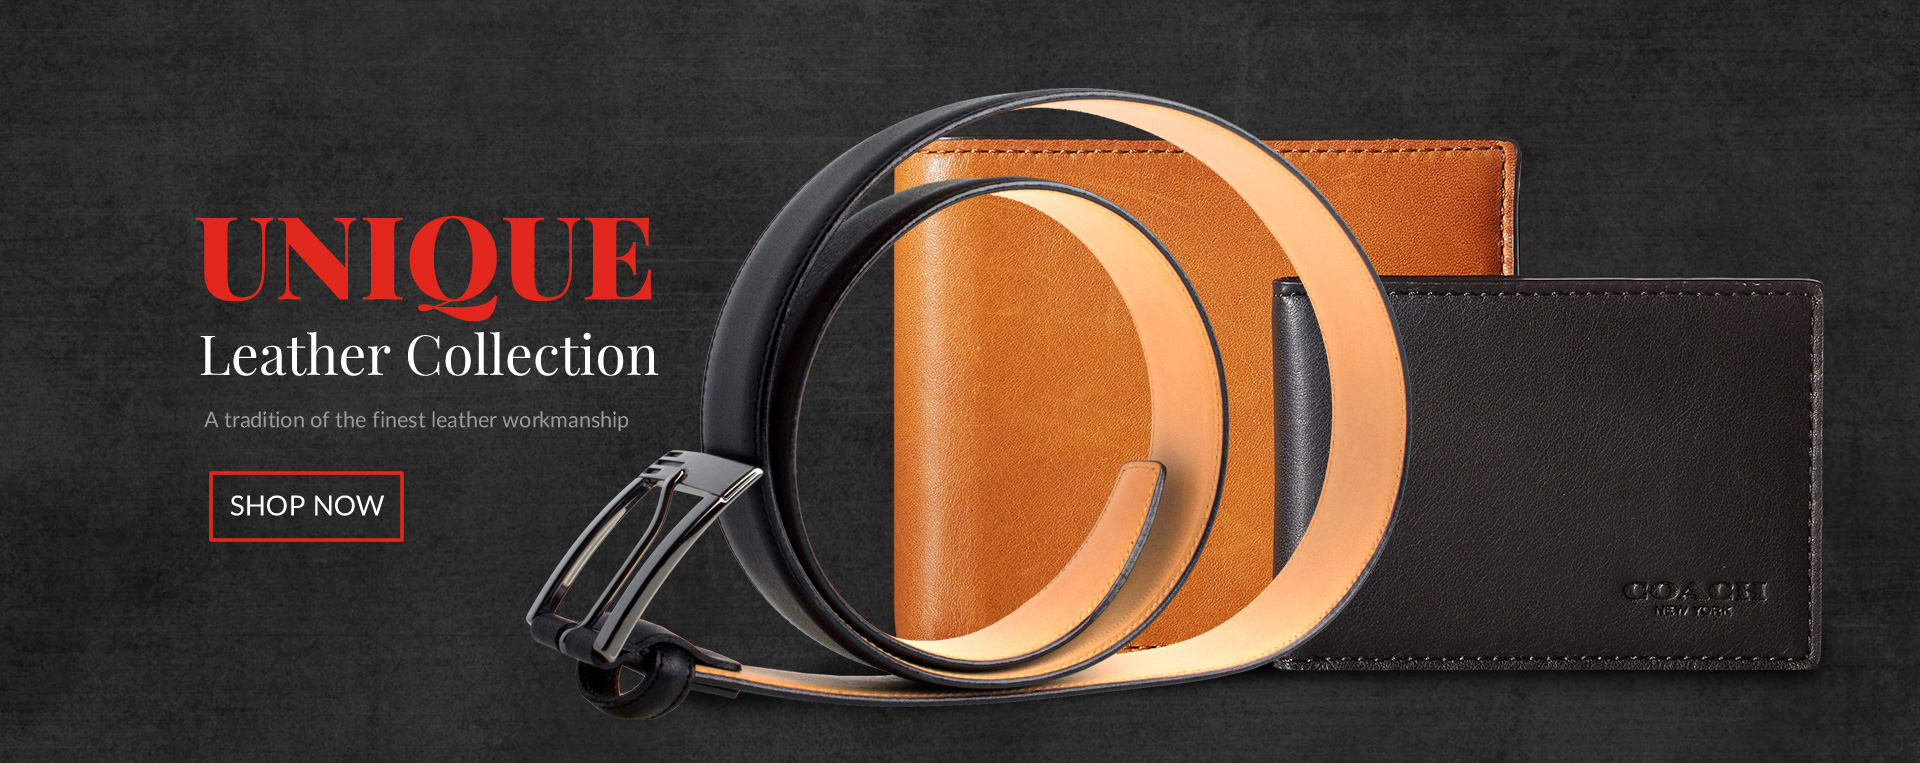 Products Allleathergoods Com